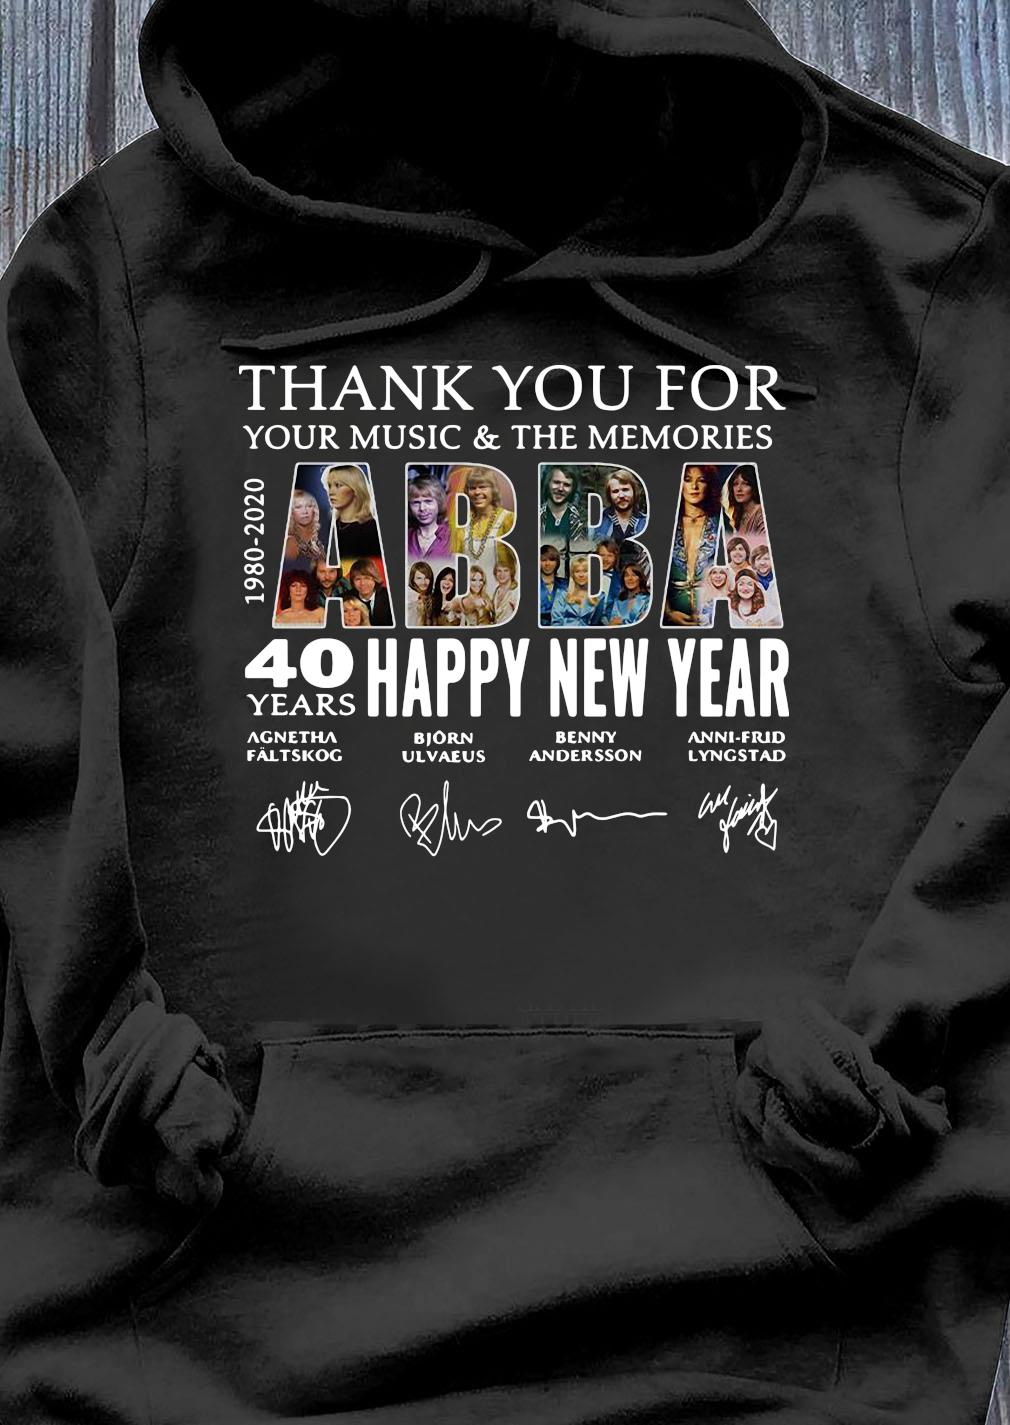 ABBA 40 Years Happy New Year 1980 2020 Thank You For Your Music And The Memories Signature Shirt Hoodie